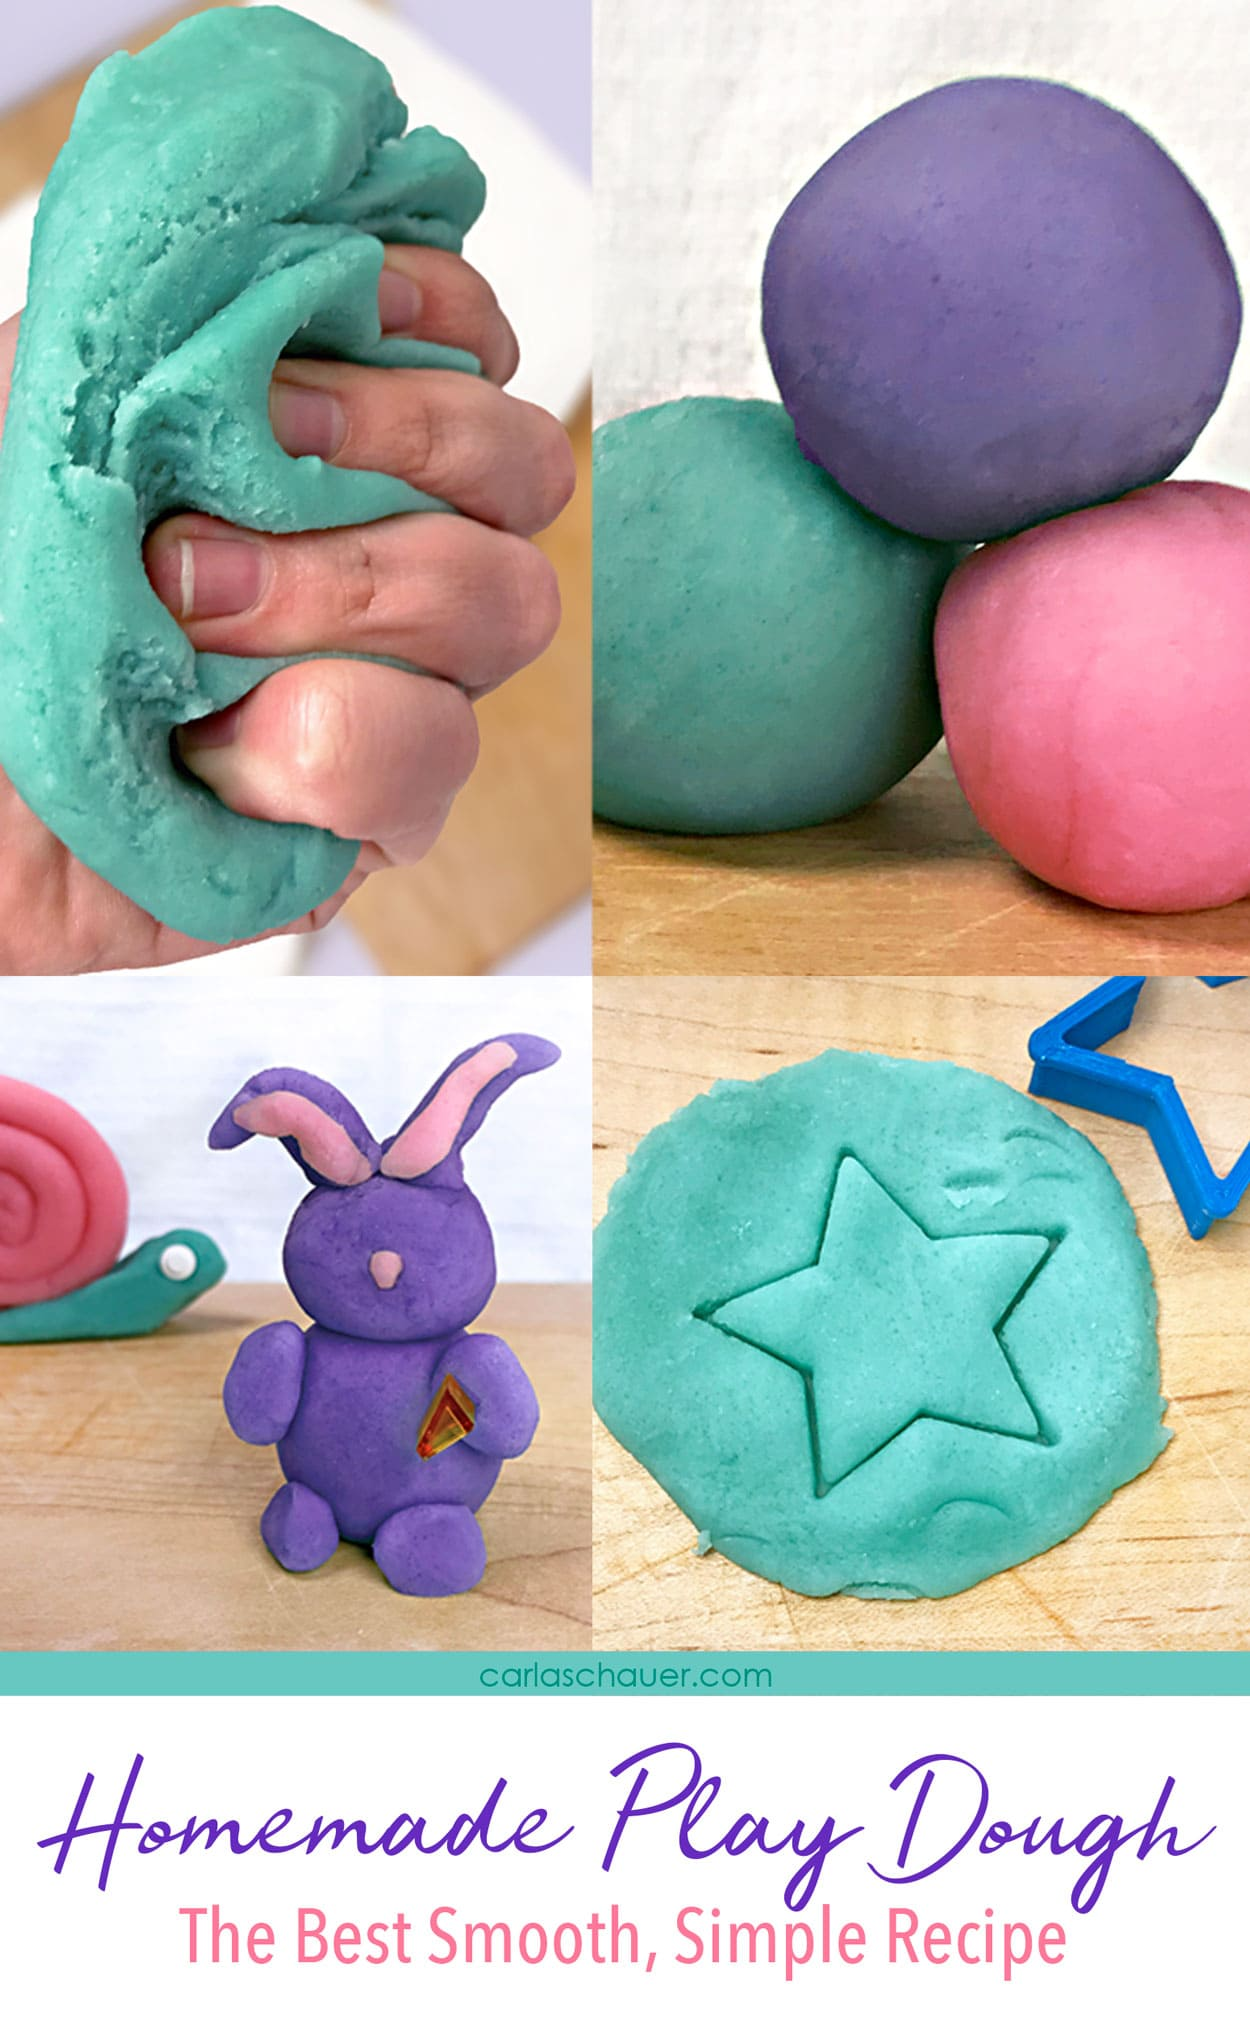 Photo collage of homemade playdough use pictures, with text overlay.